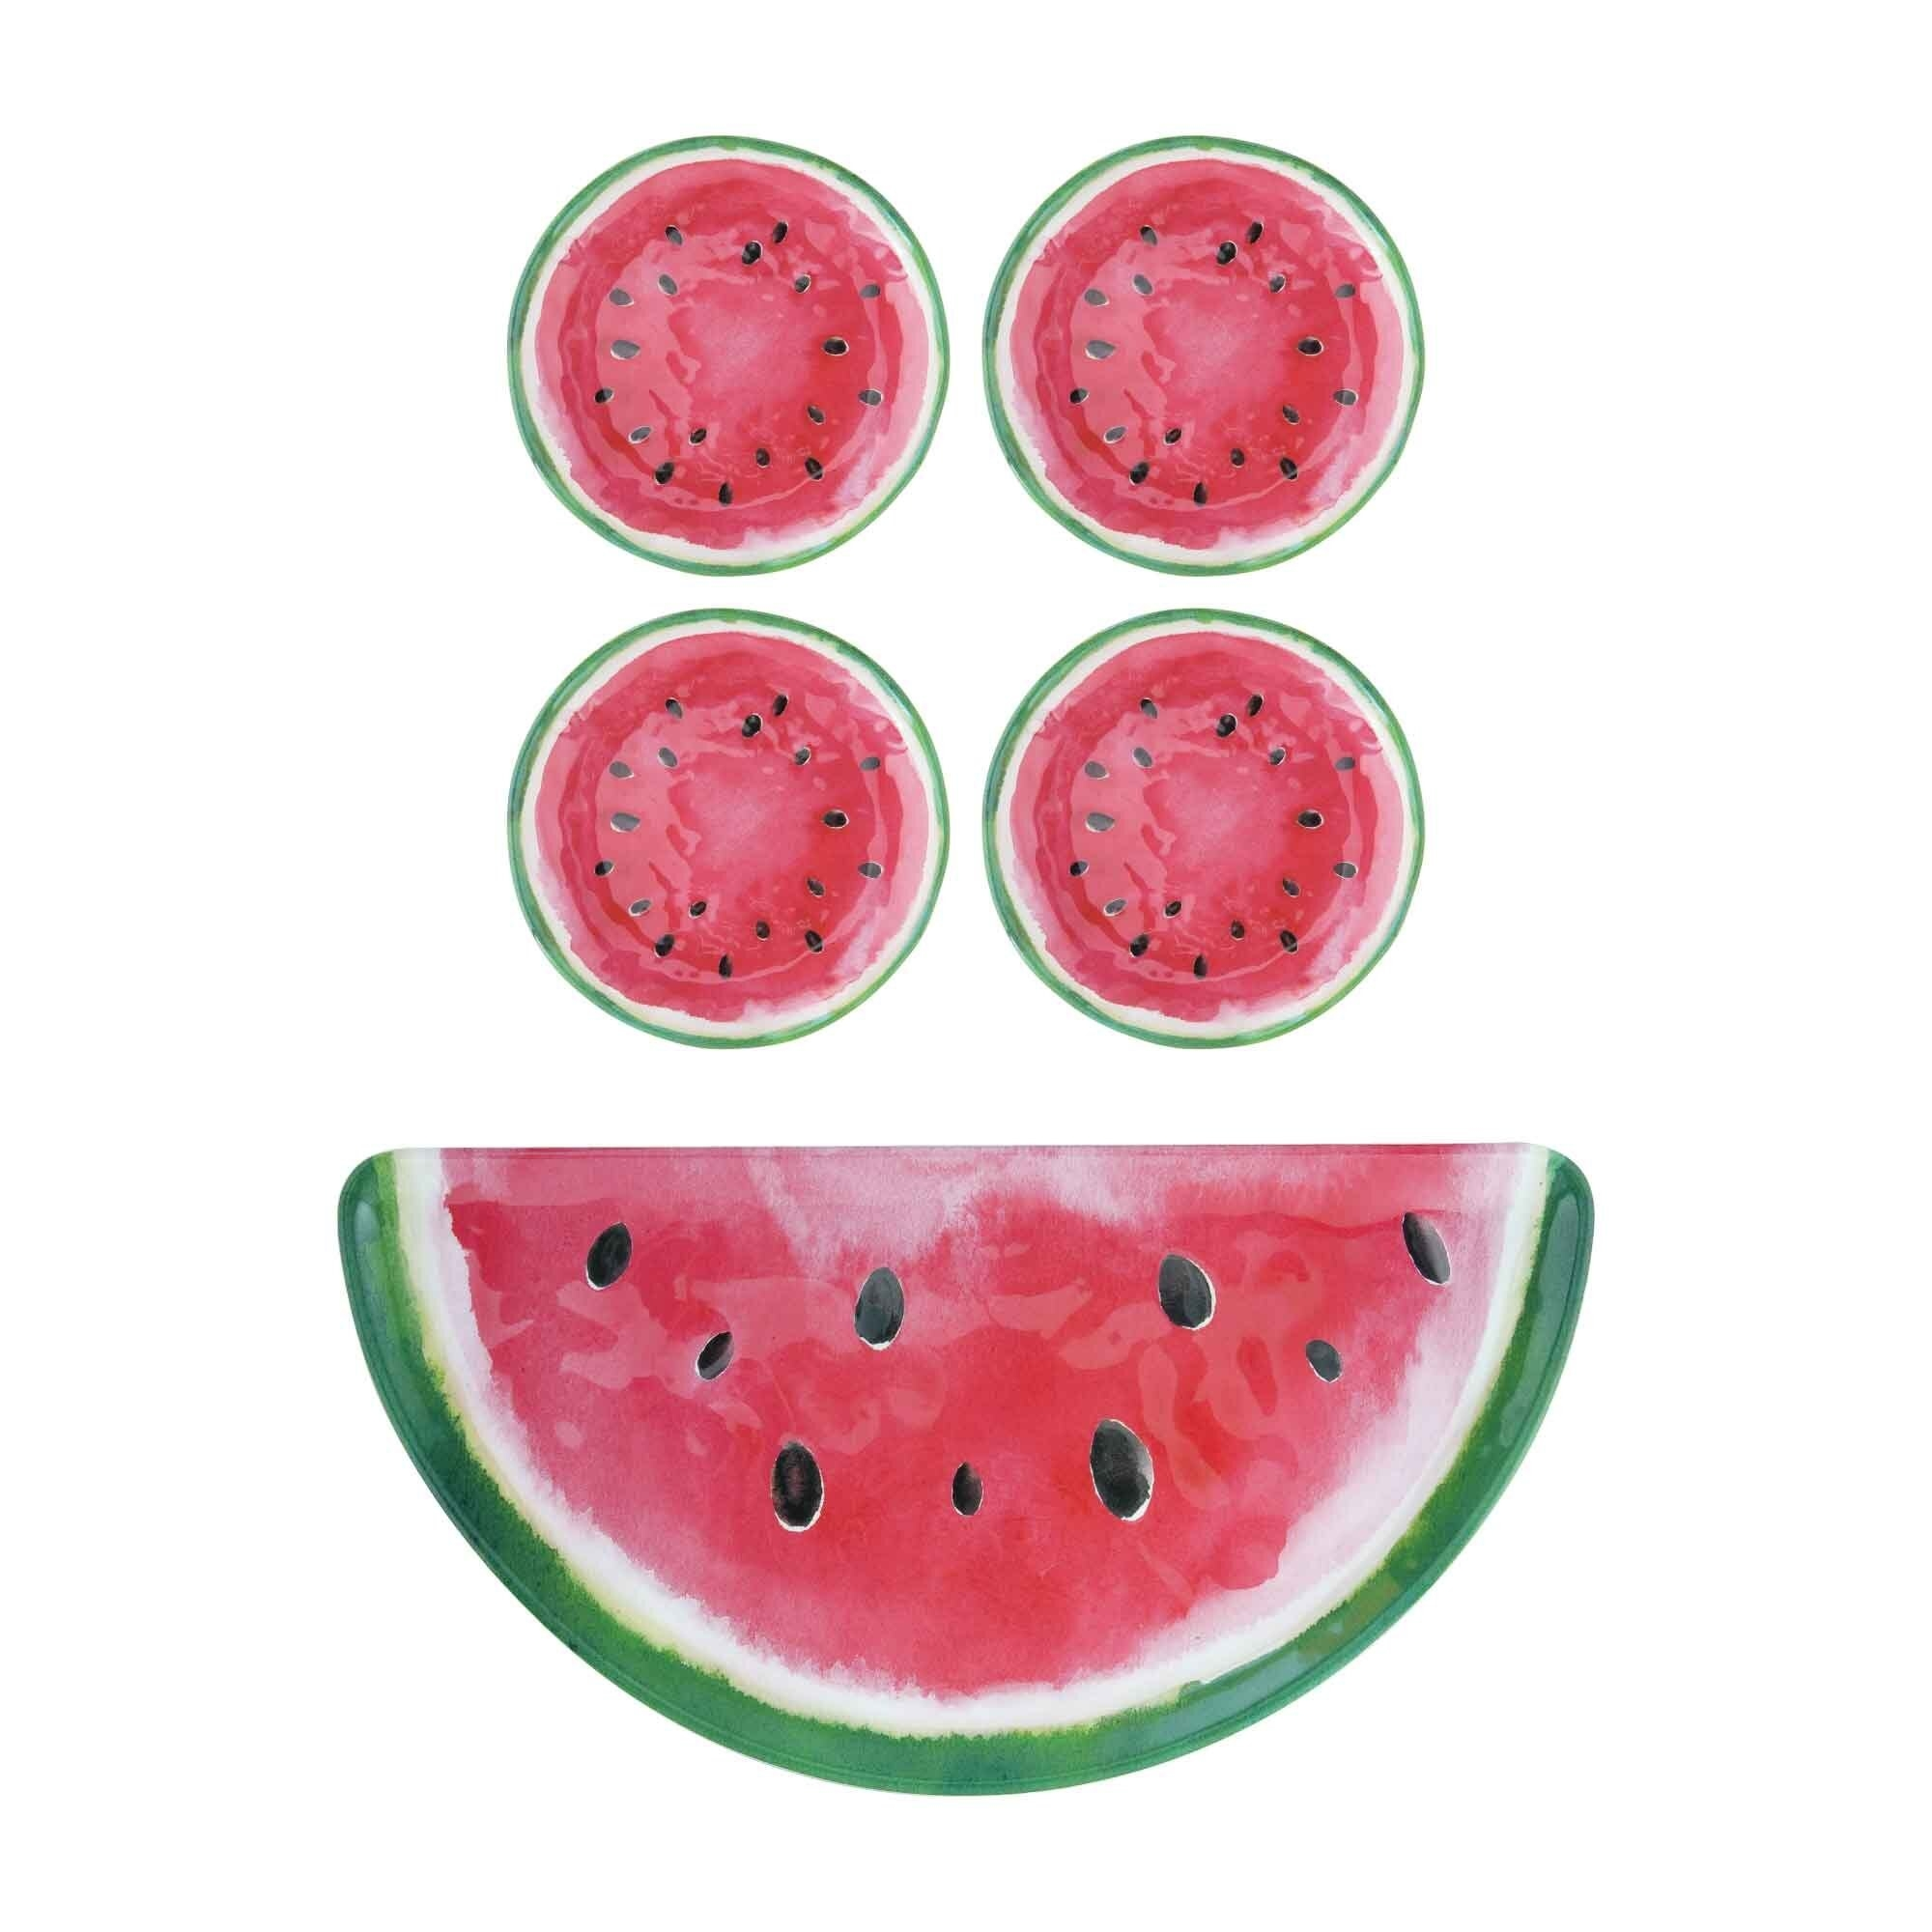 The set, which is watermelon printed, with a half serving platter and four plates